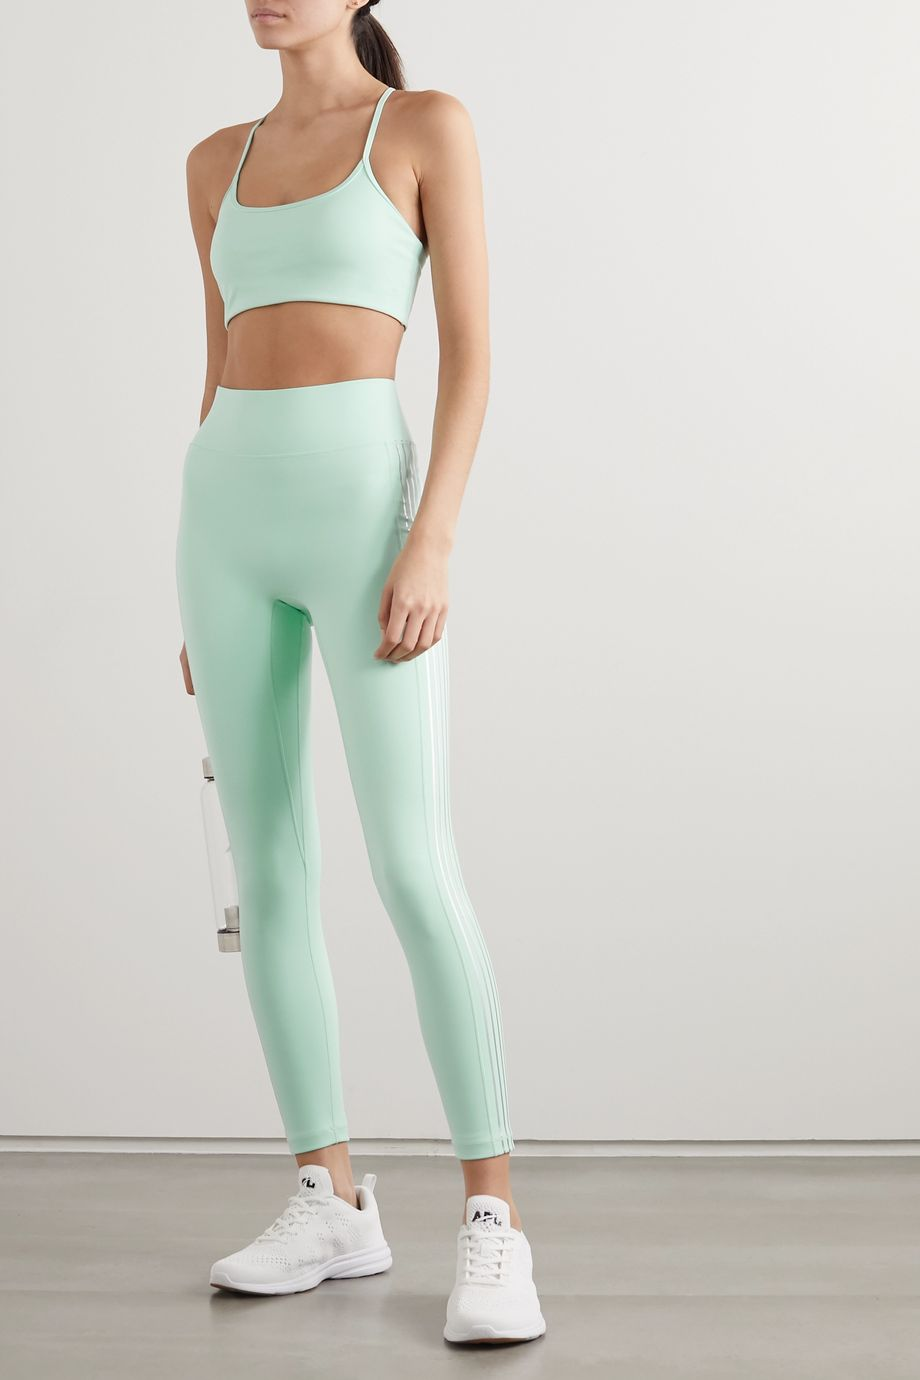 All Access Set List striped stretch leggings